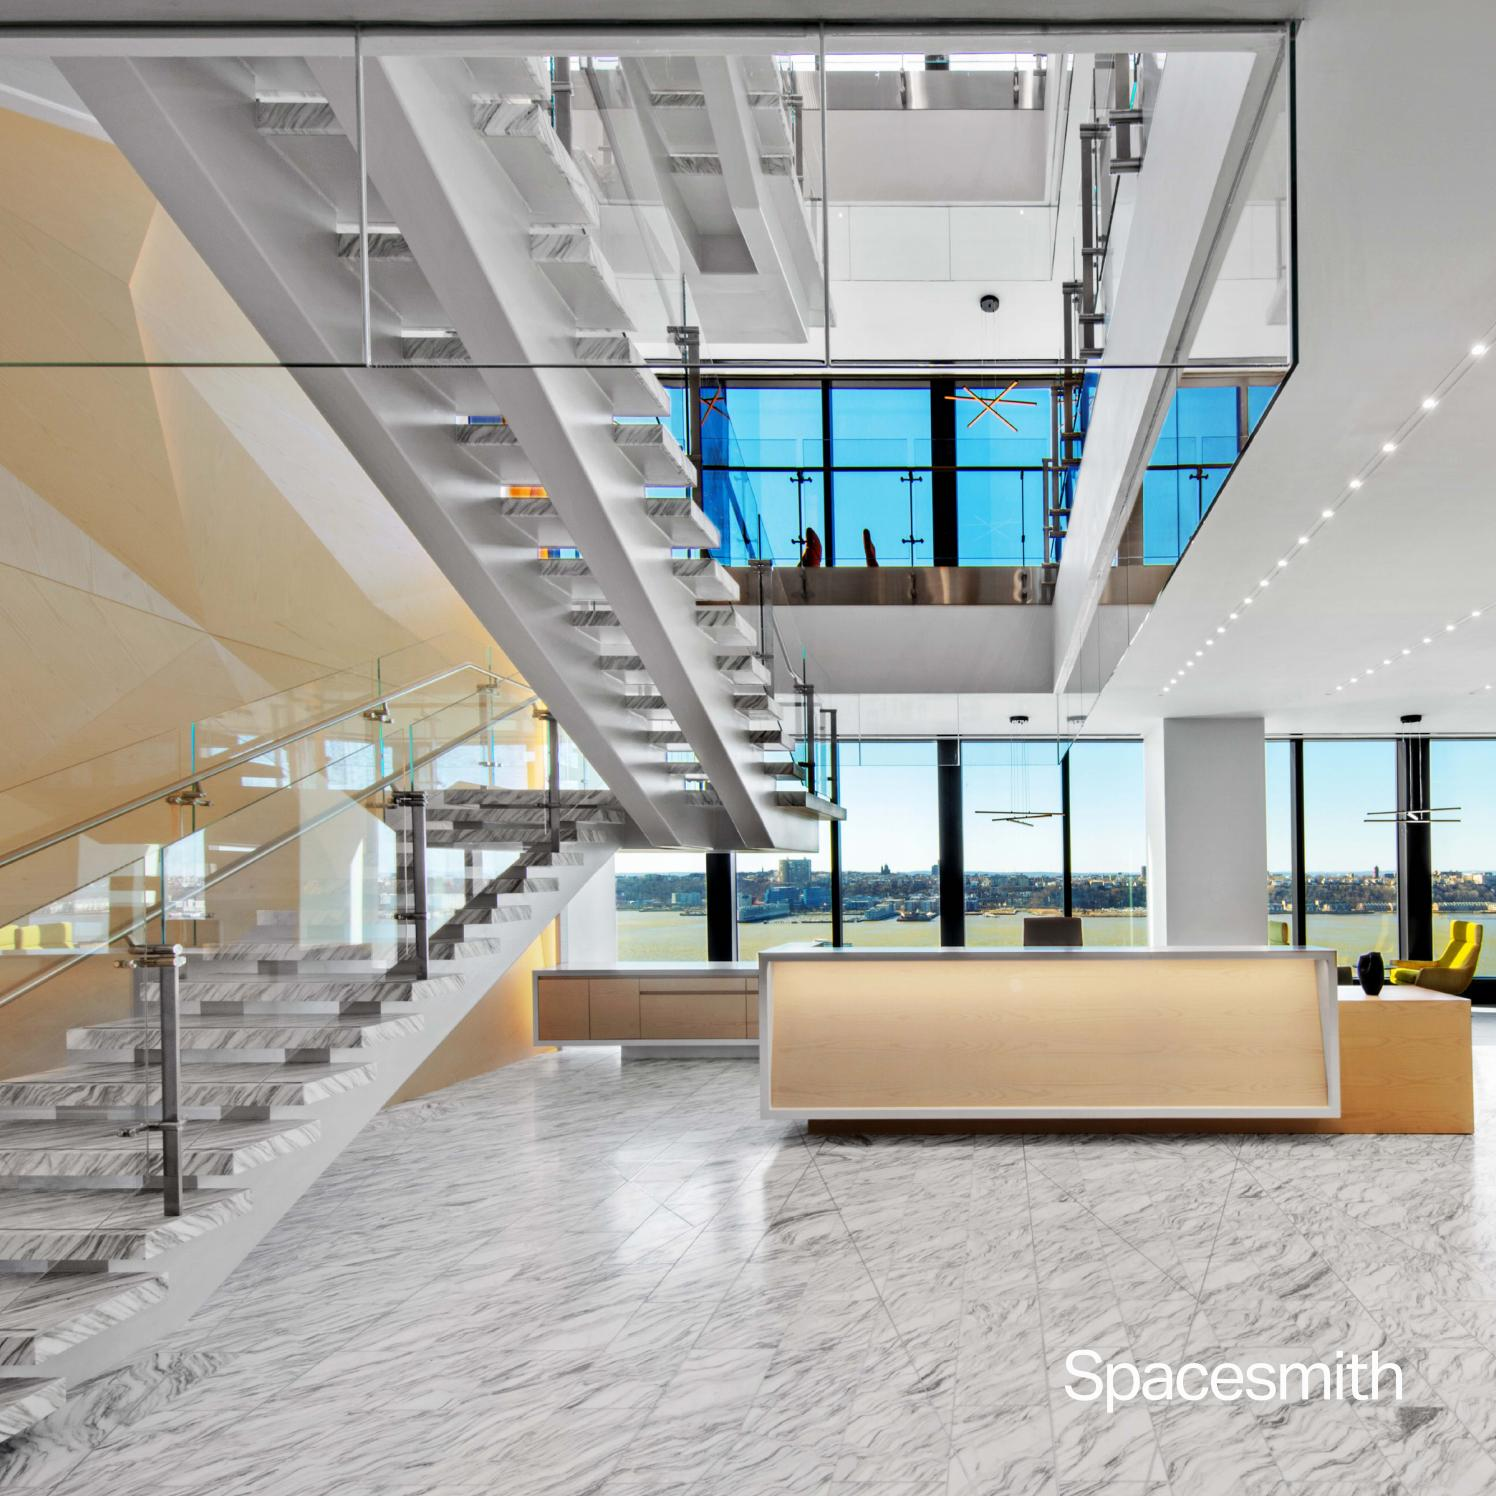 Spacesmith LLP Select Work by Kristen Persinos - issuu